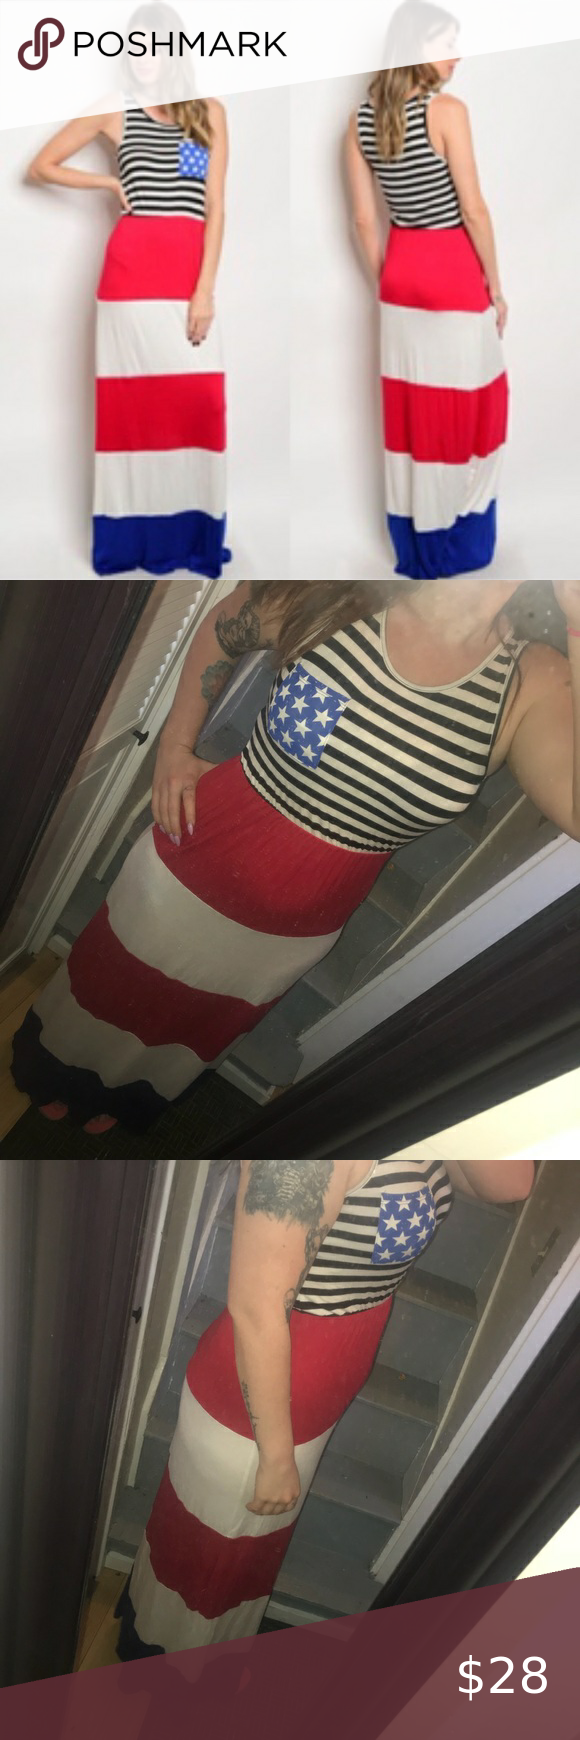 4th Of July Red White And Blue Maxi Dress Maxi Dress Blue Blue Maxi Royal Blue Maxi Dress [ 1740 x 580 Pixel ]